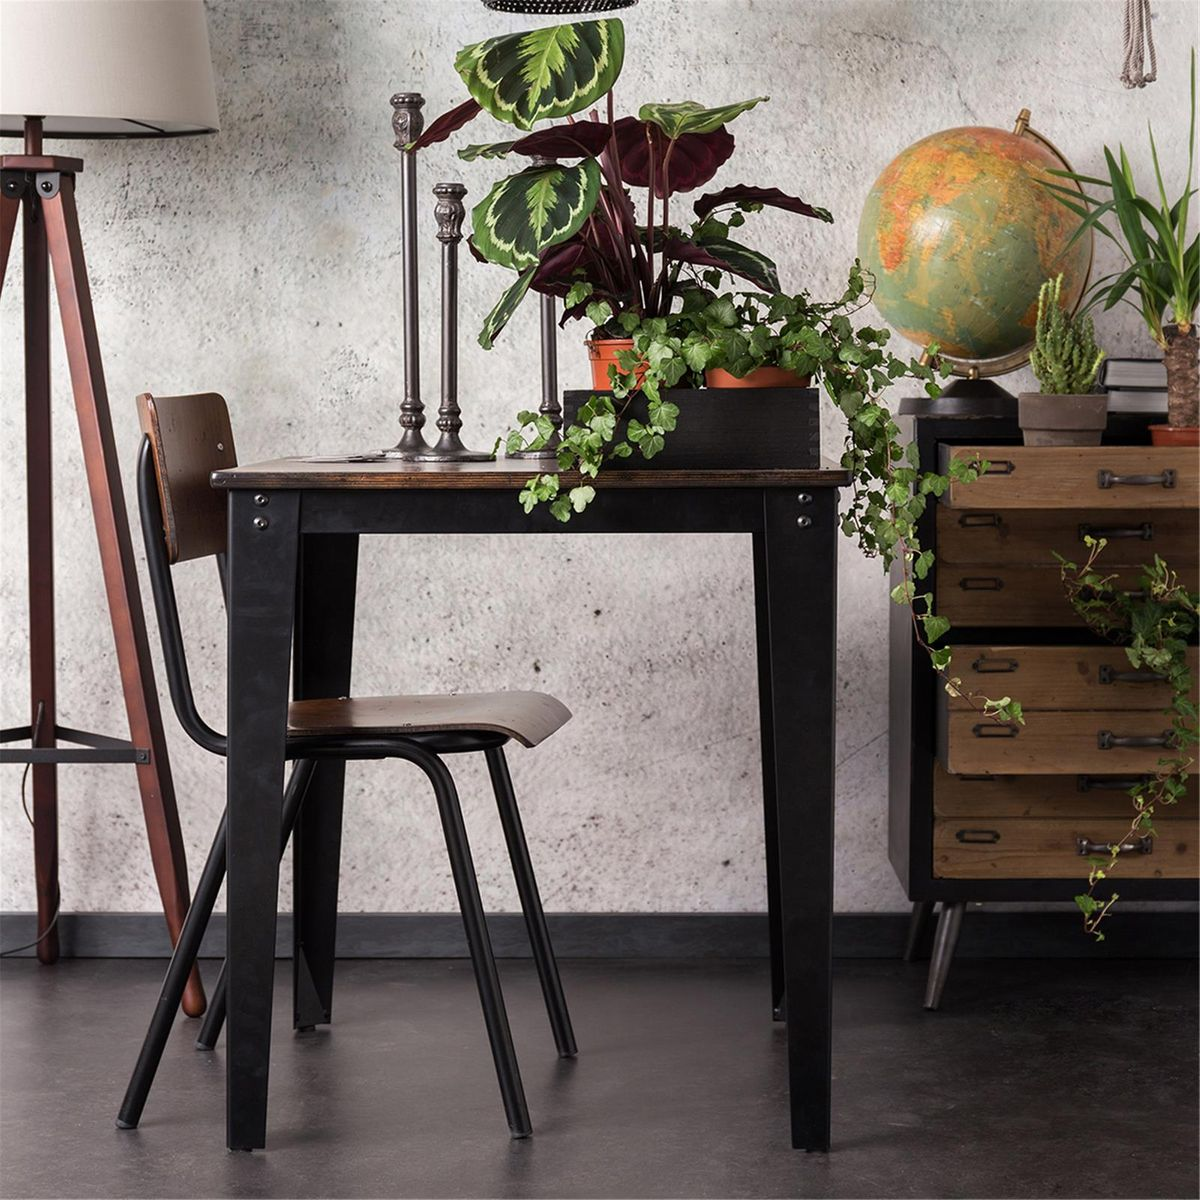 table esprit factory en contreplaqu bouleau scuola. Black Bedroom Furniture Sets. Home Design Ideas